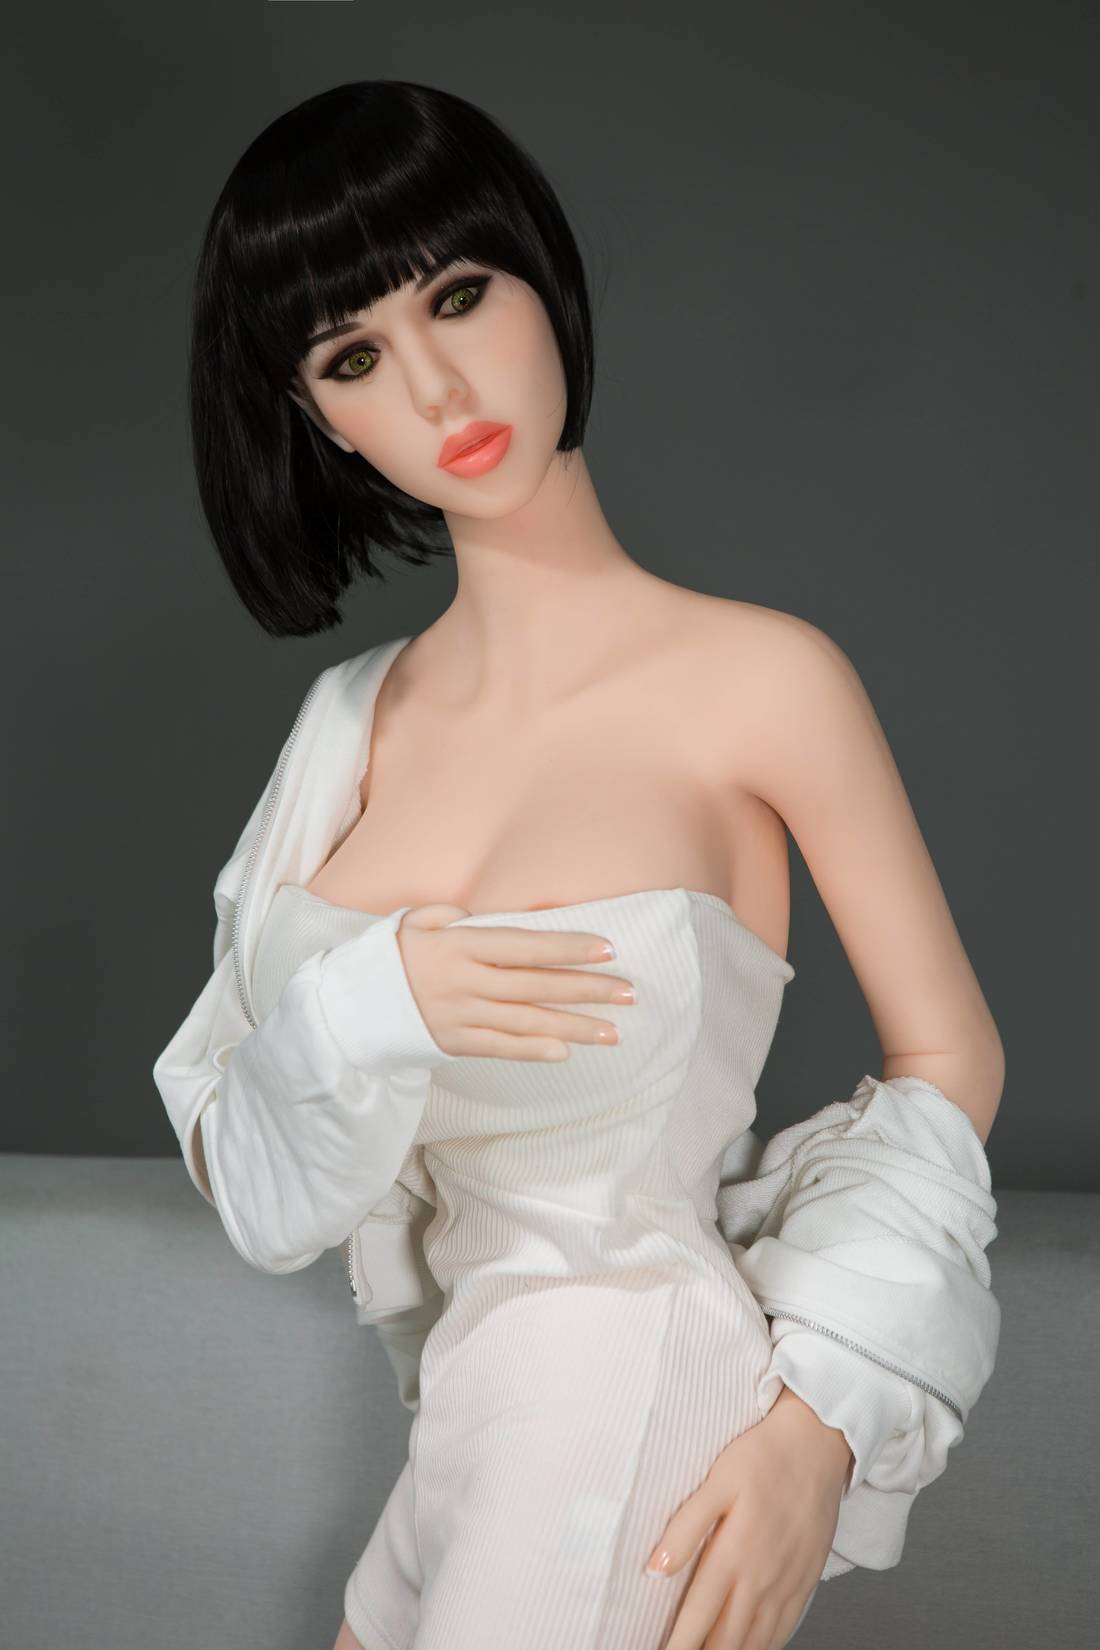 Life Size Climax Doll - Sarah